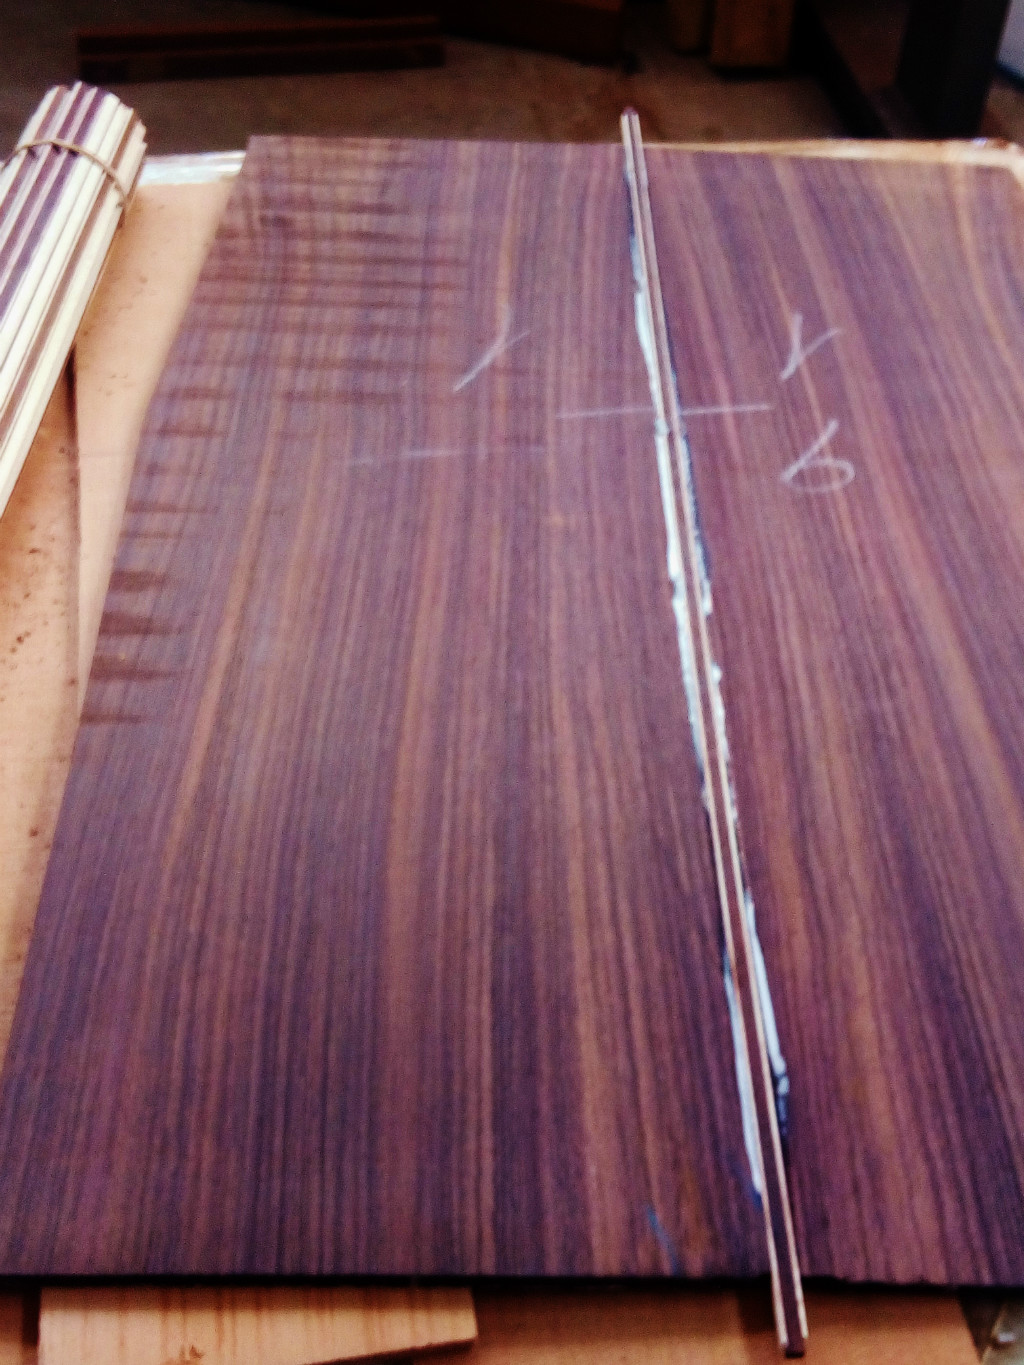 Solid or laminated wood guitar